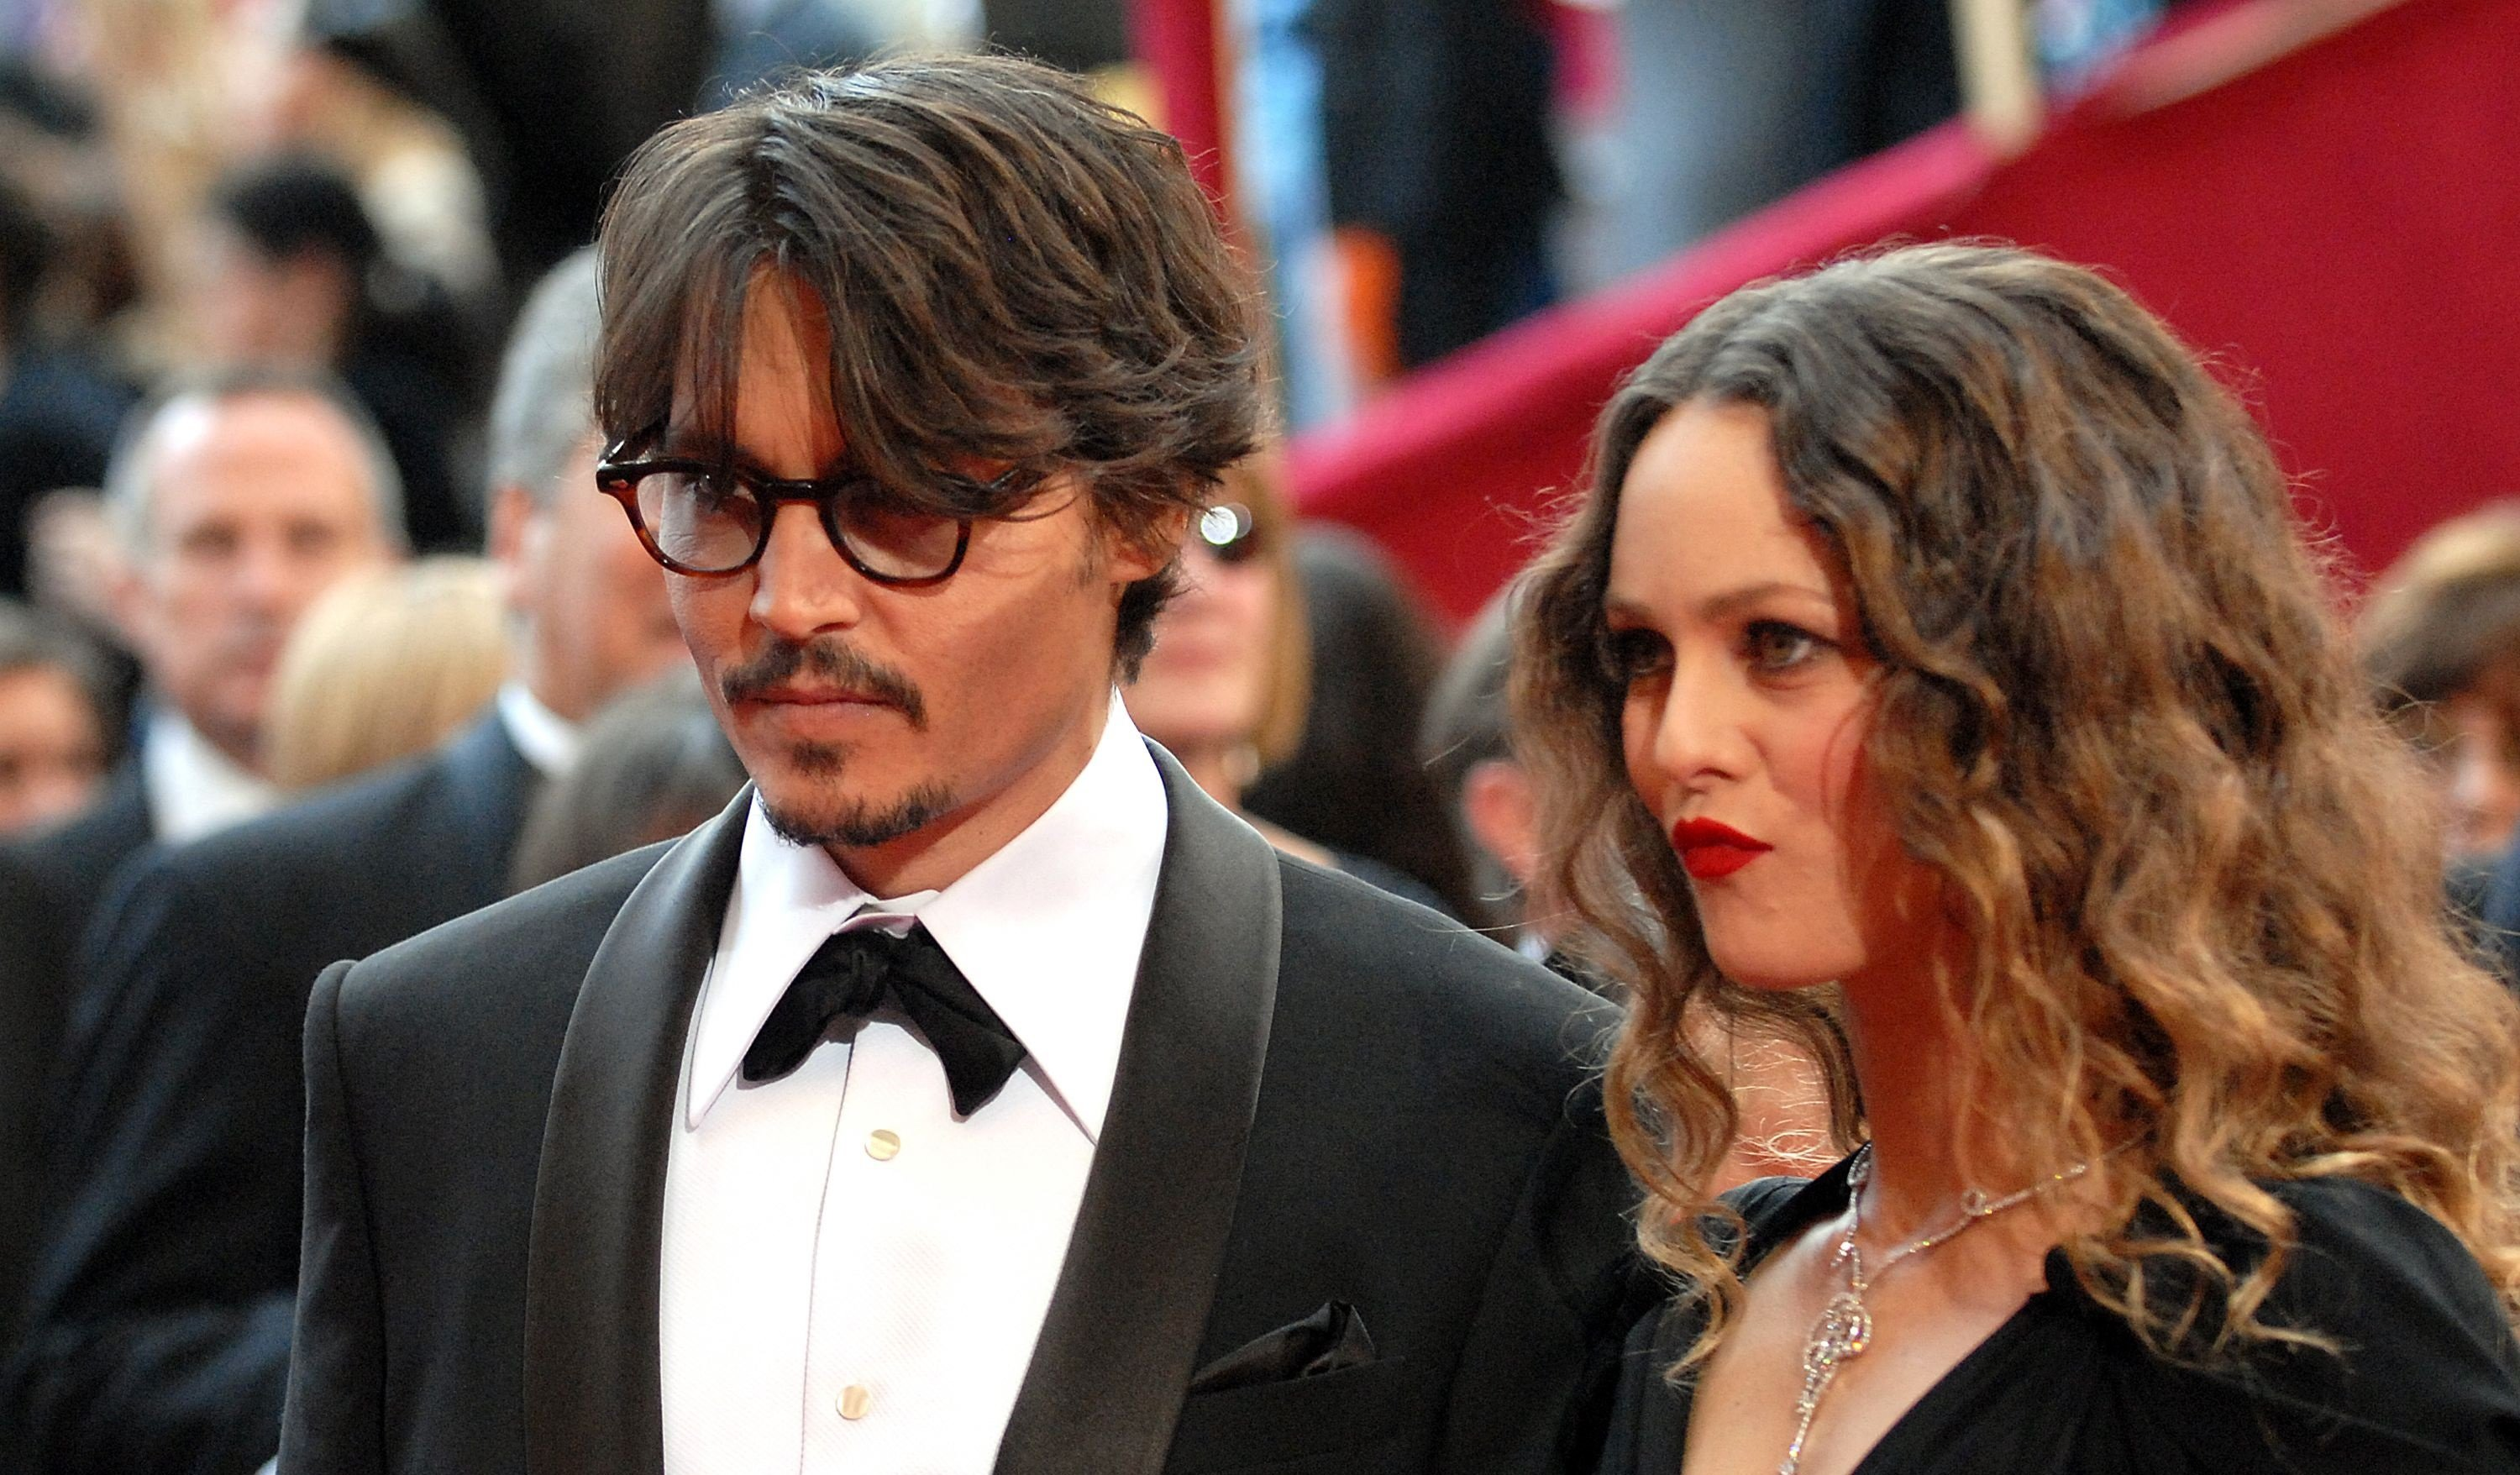 Johnny Depp and Vanessa Paradis arrive at the 80th annual Academy Awards / Getty Images